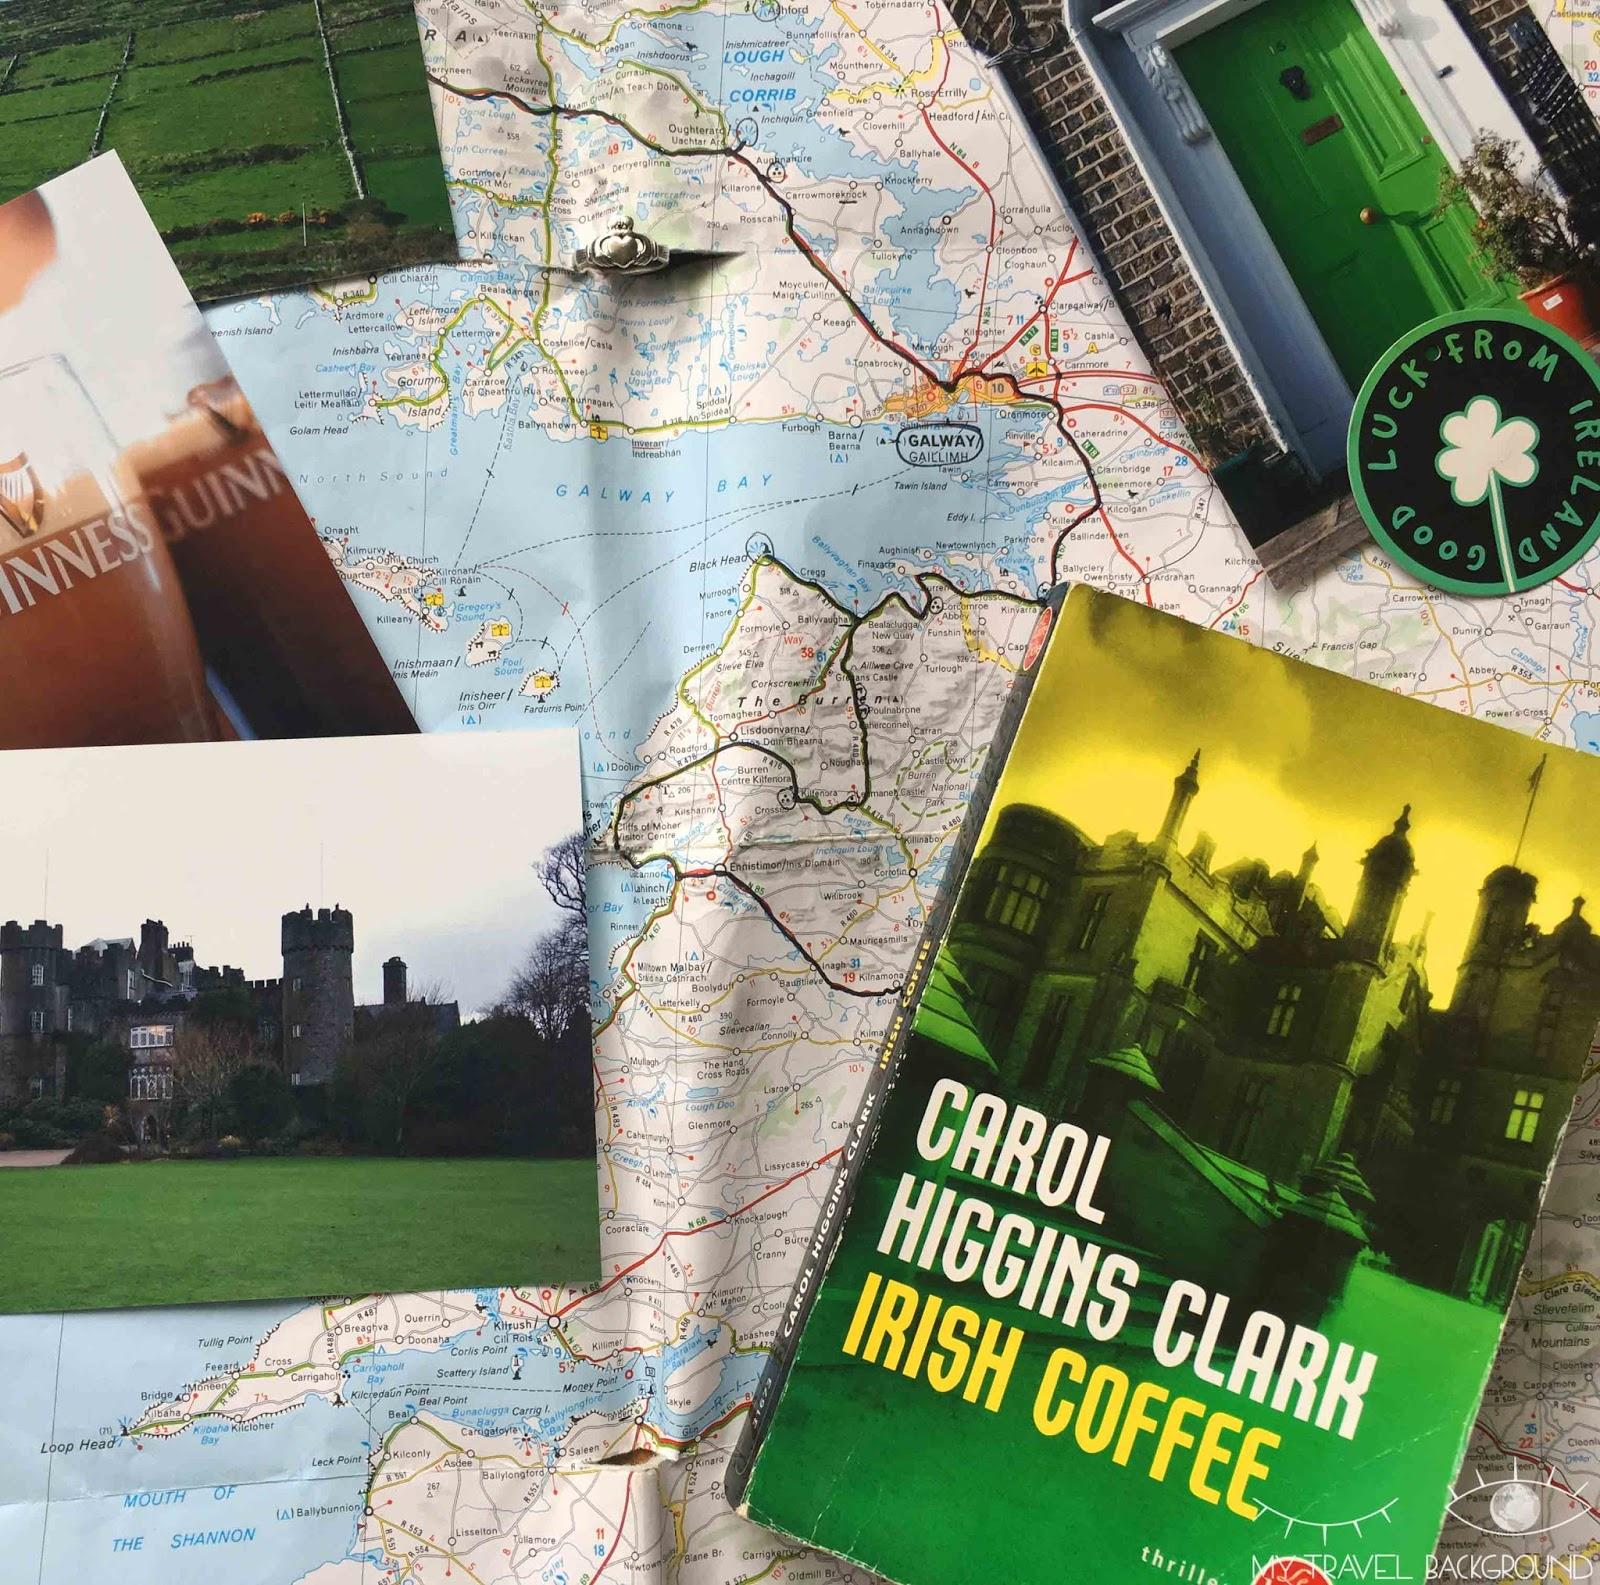 My Travel Background : 9 romans qui vont vous faire voyager, Irish Coffee, Carol Higgins Clark